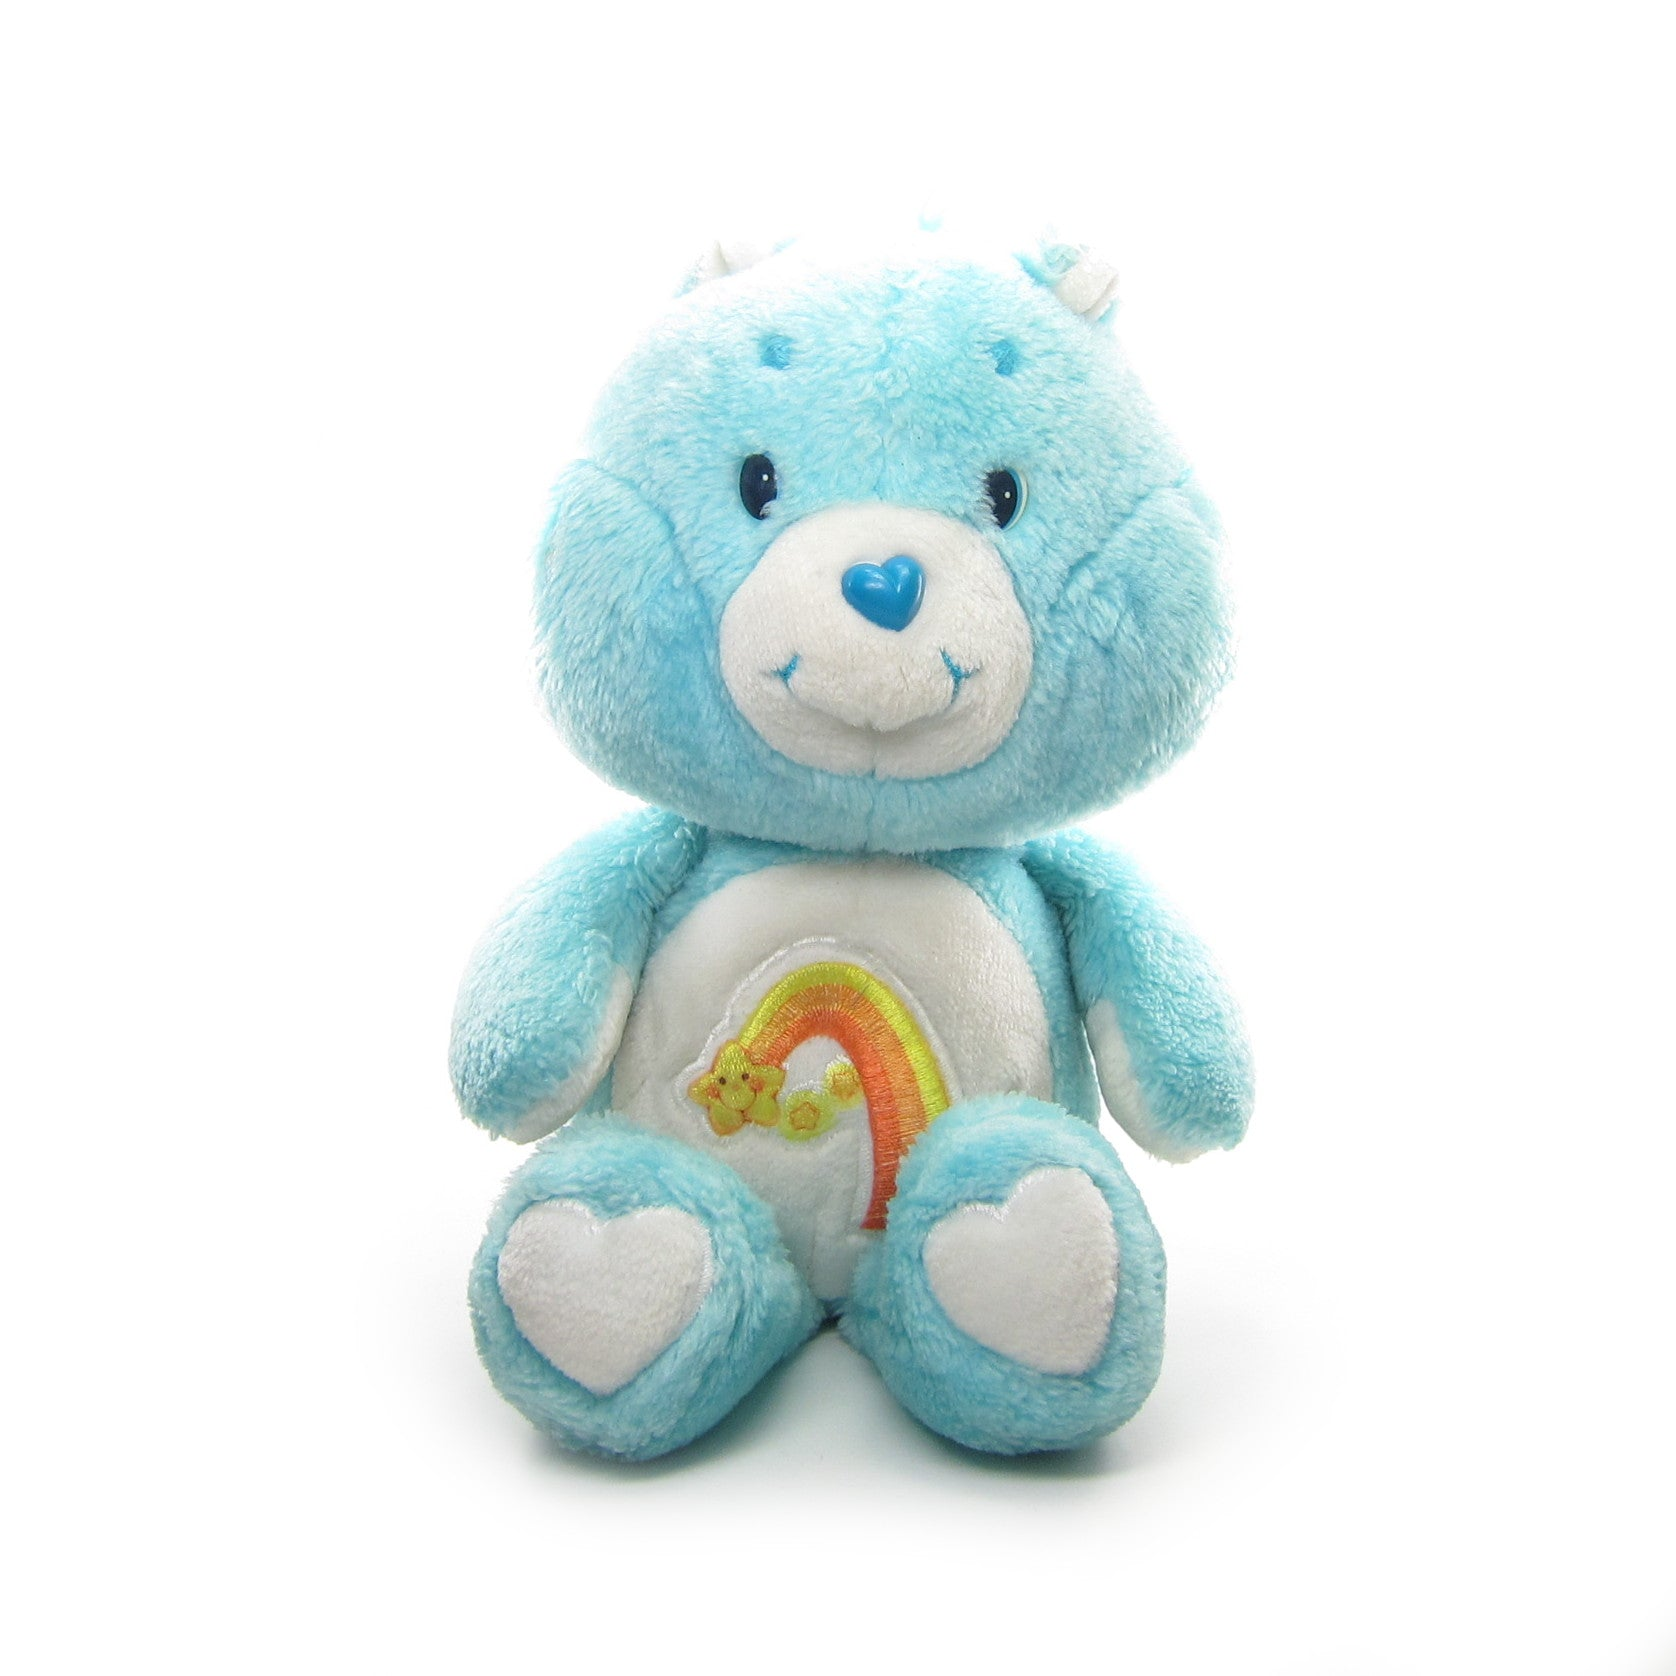 Care Bears Wish Bear plush stuffed animal toy